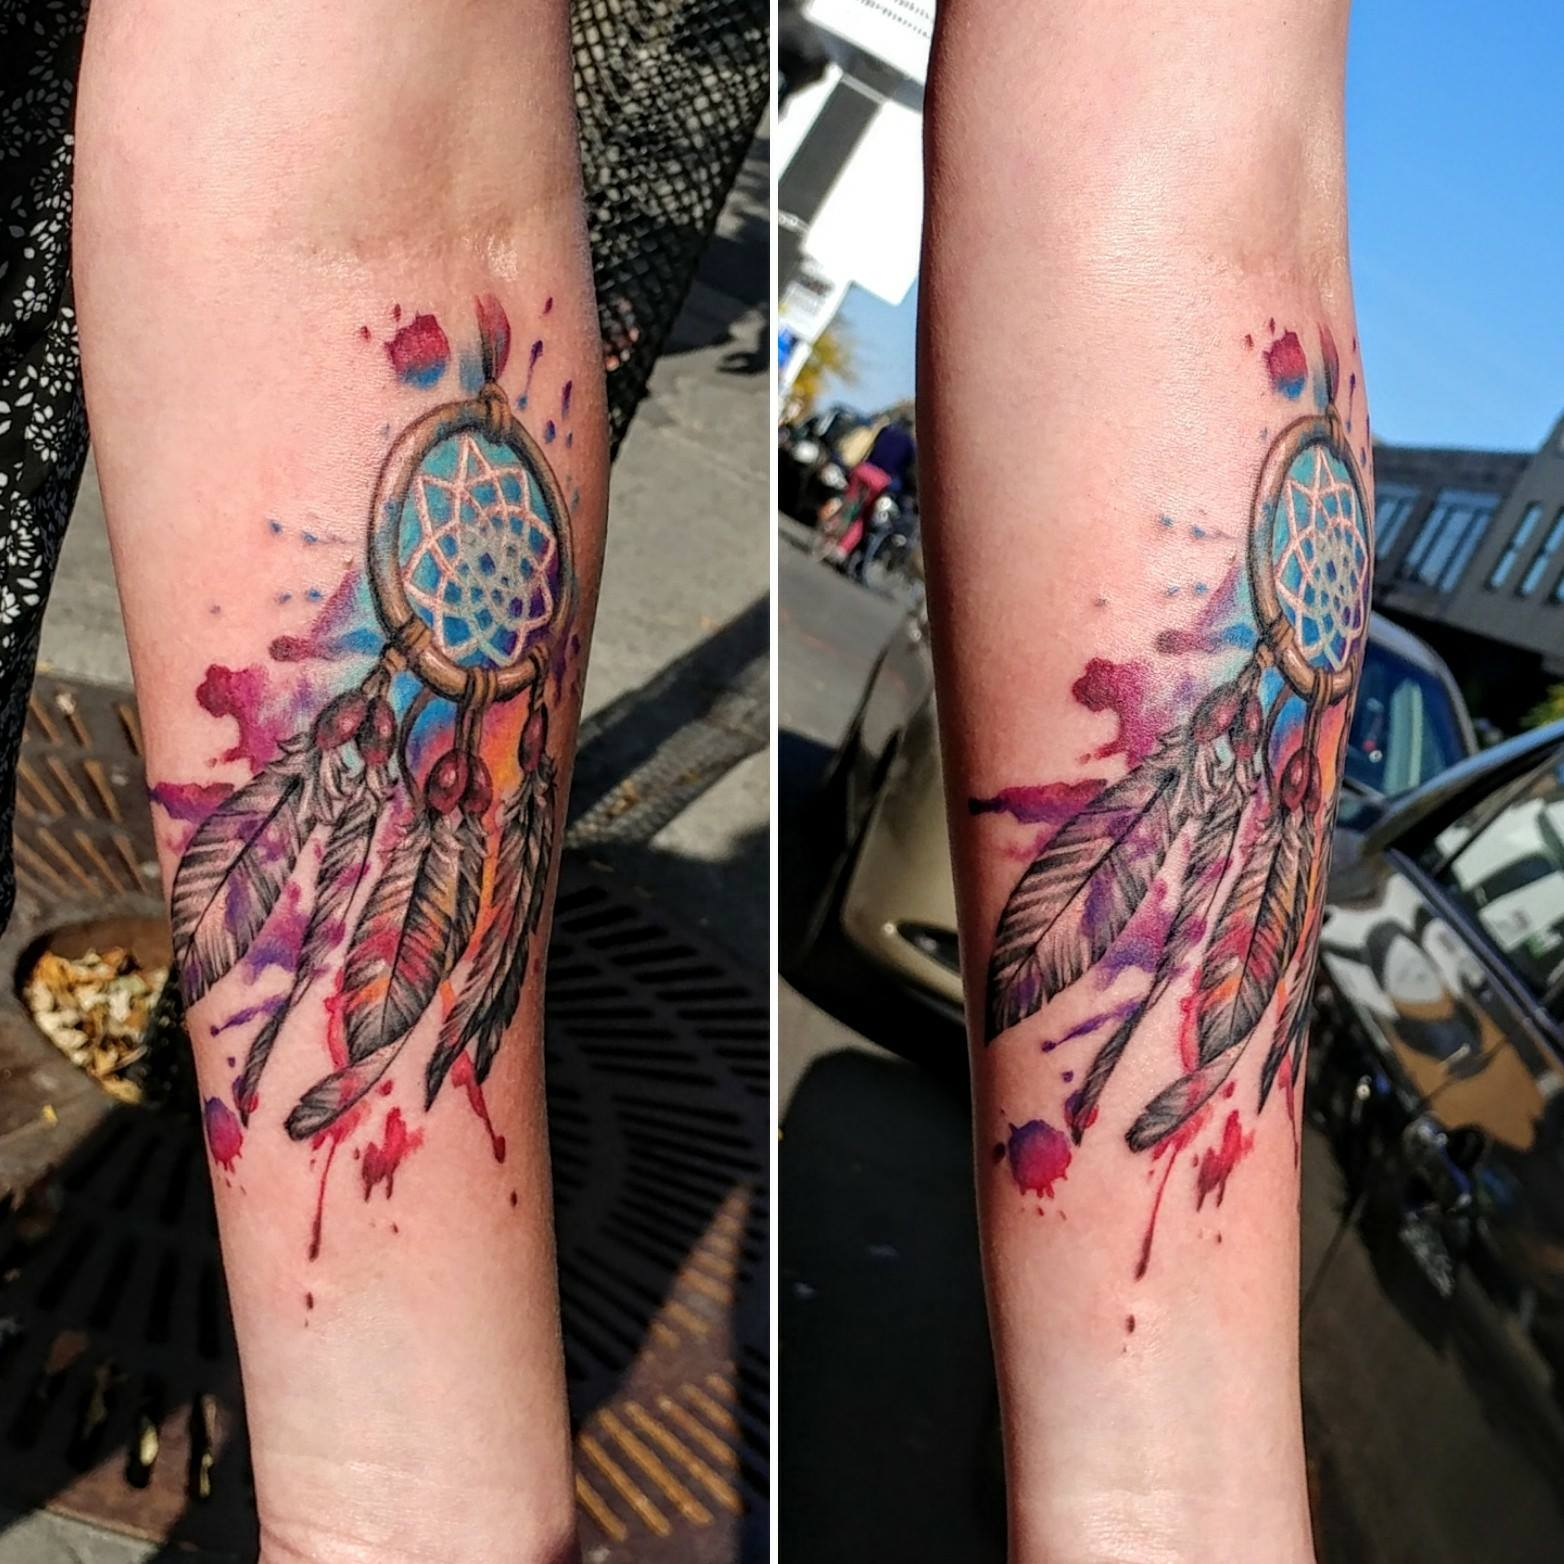 capteur de rêve - dream catcher tattoo